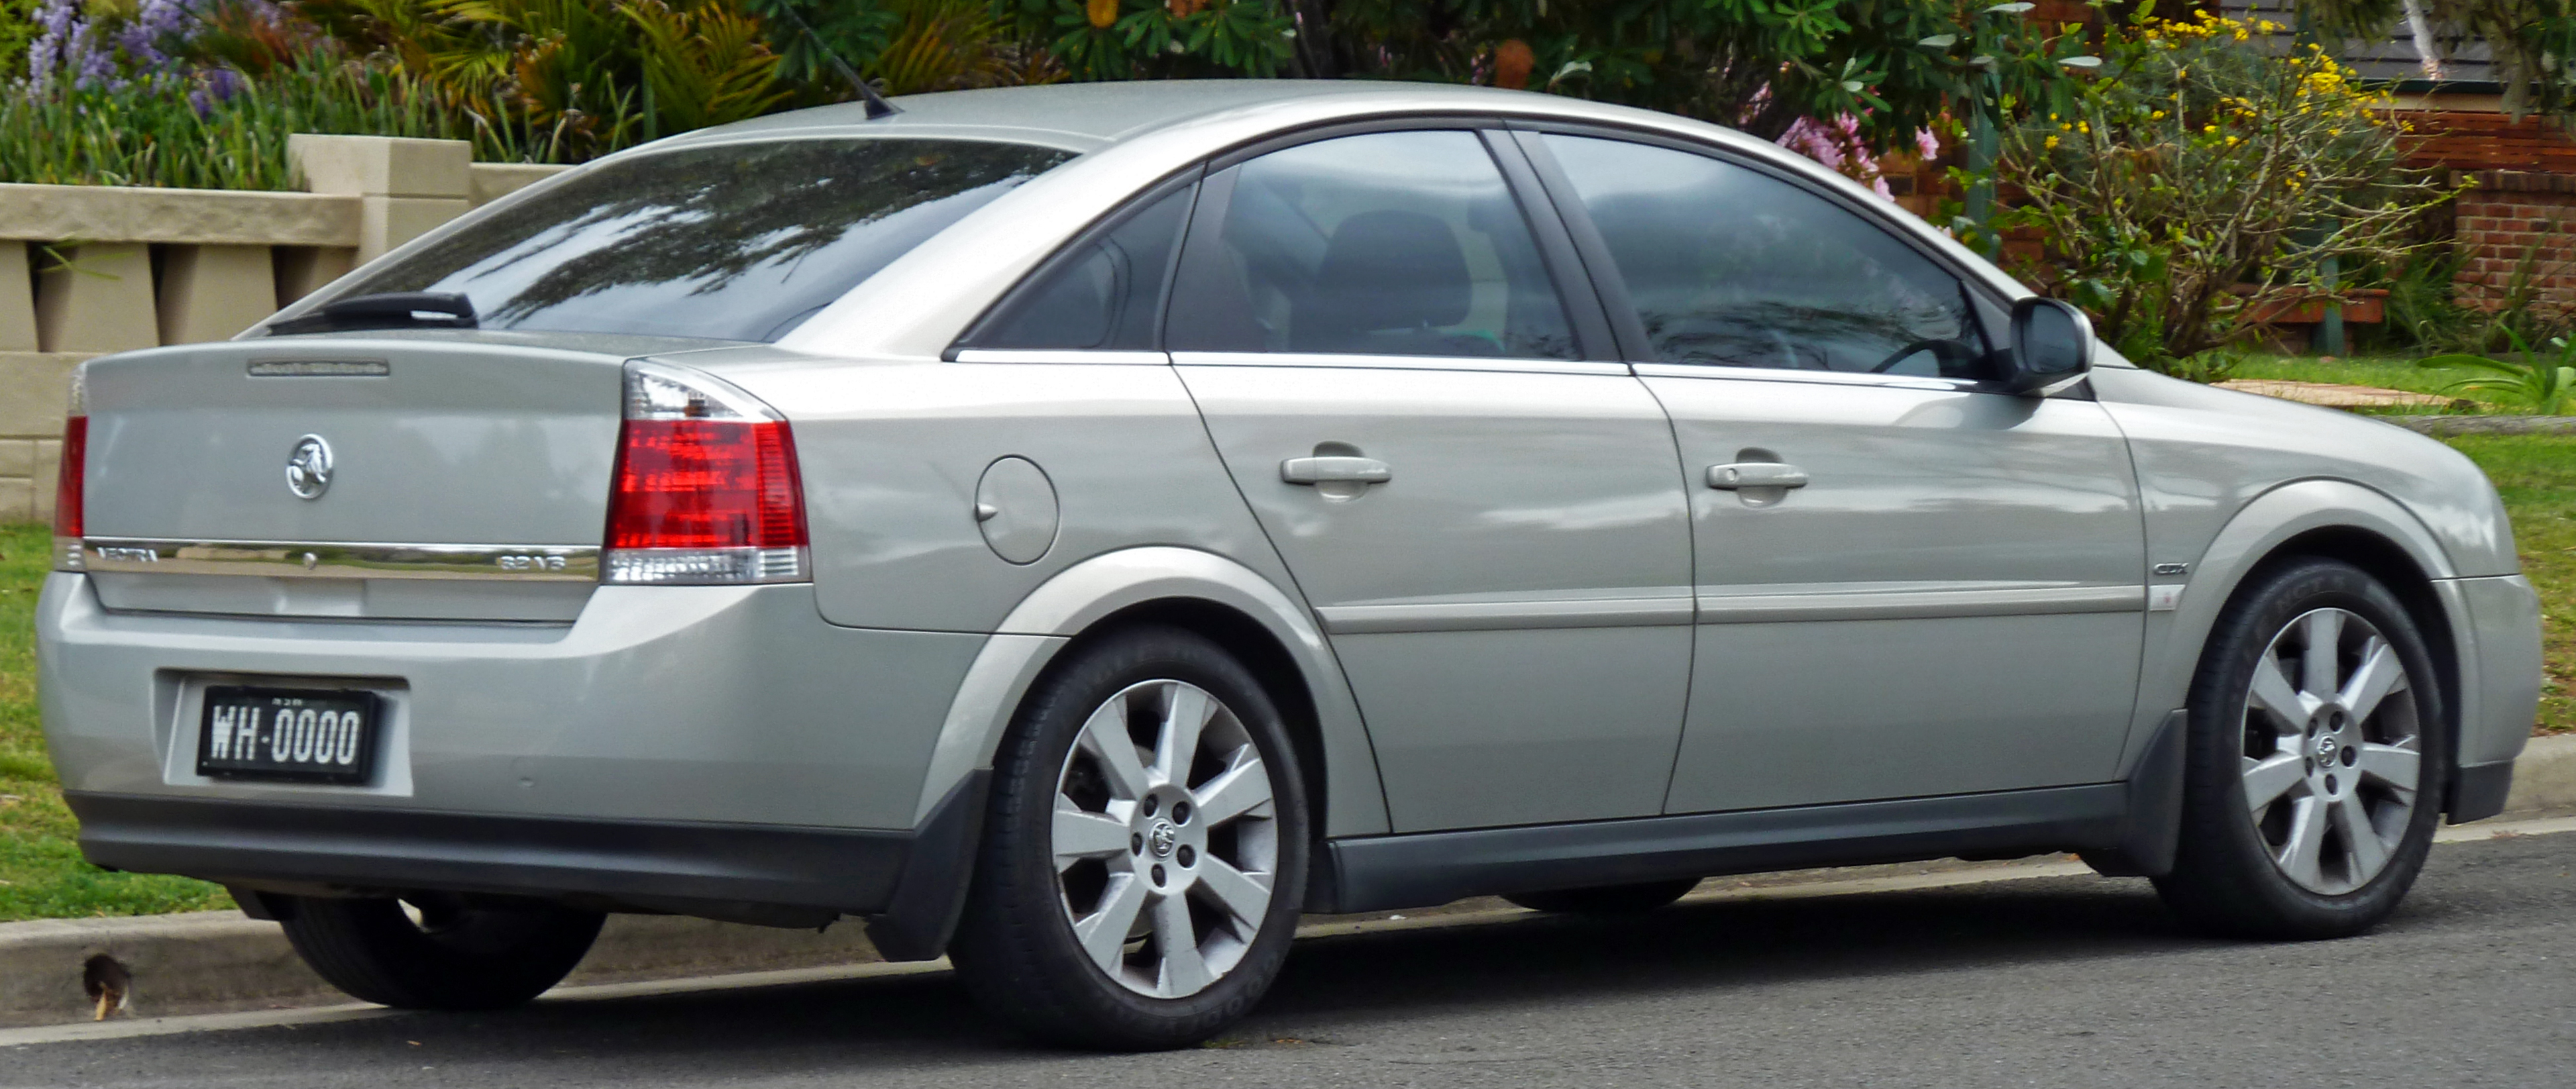 Holden vectra photo - 3